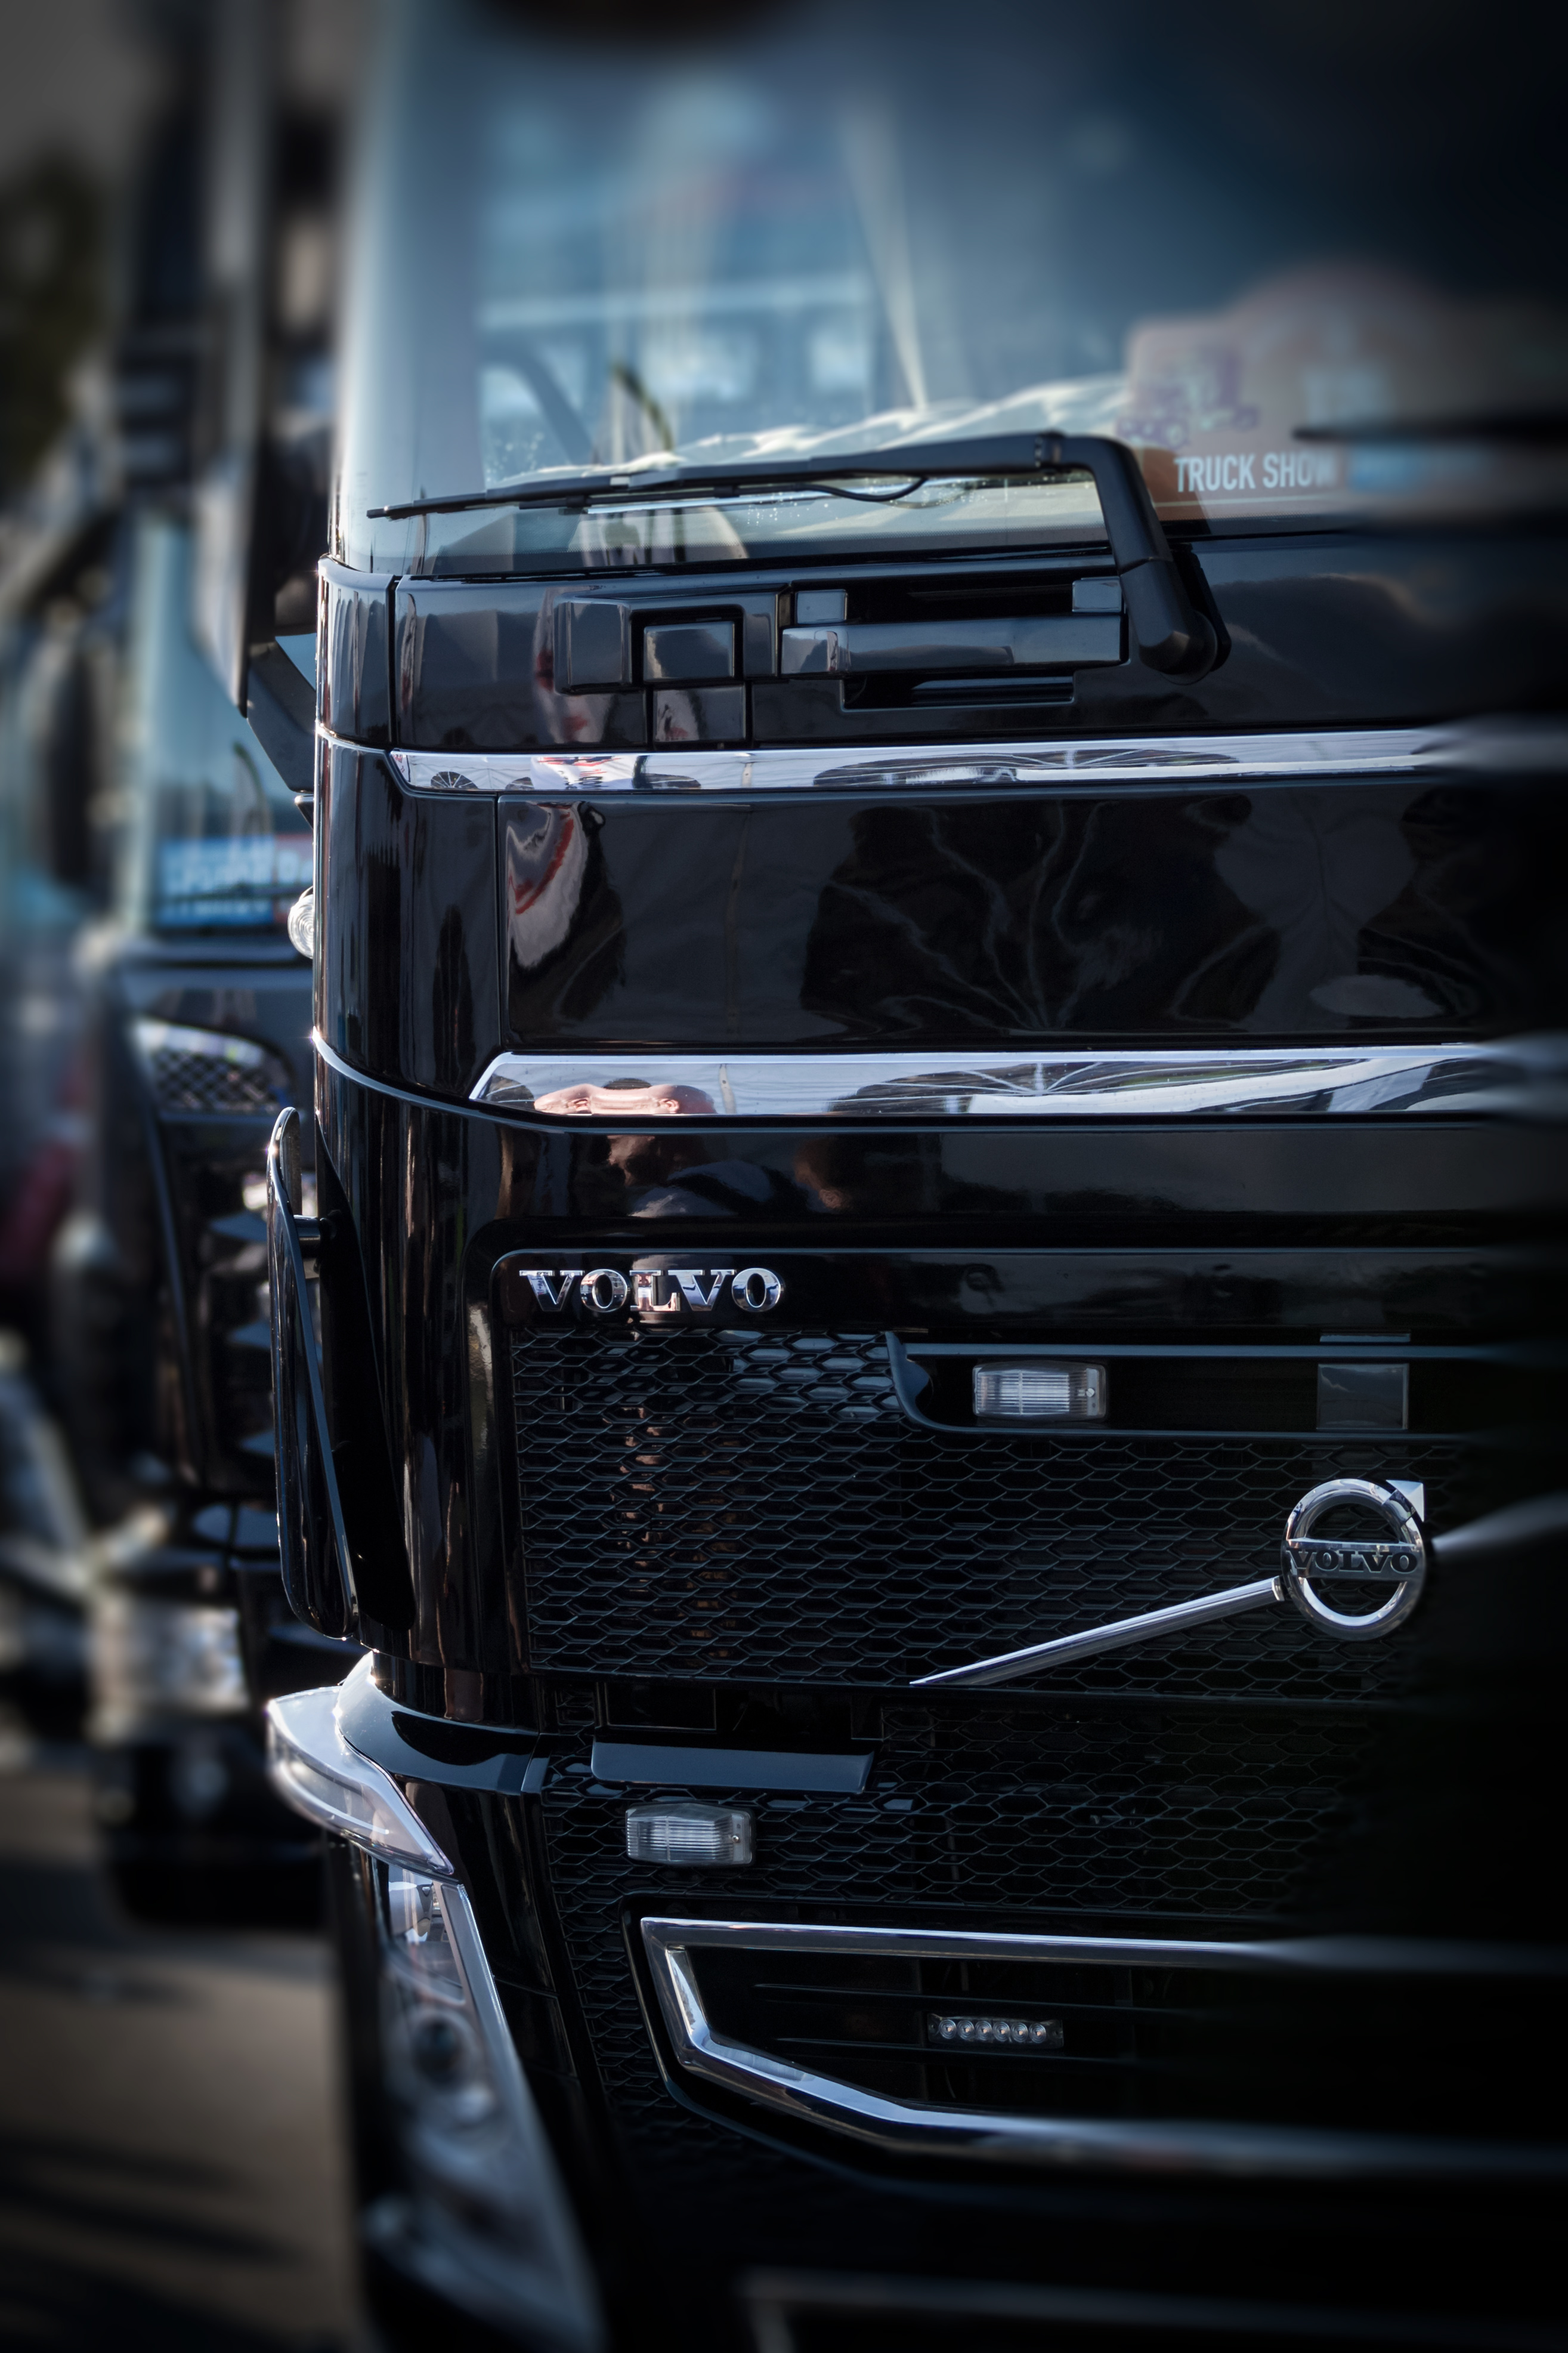 download Volvo Wallpapers High Resolution Trucks Backgrounds 2629x3944